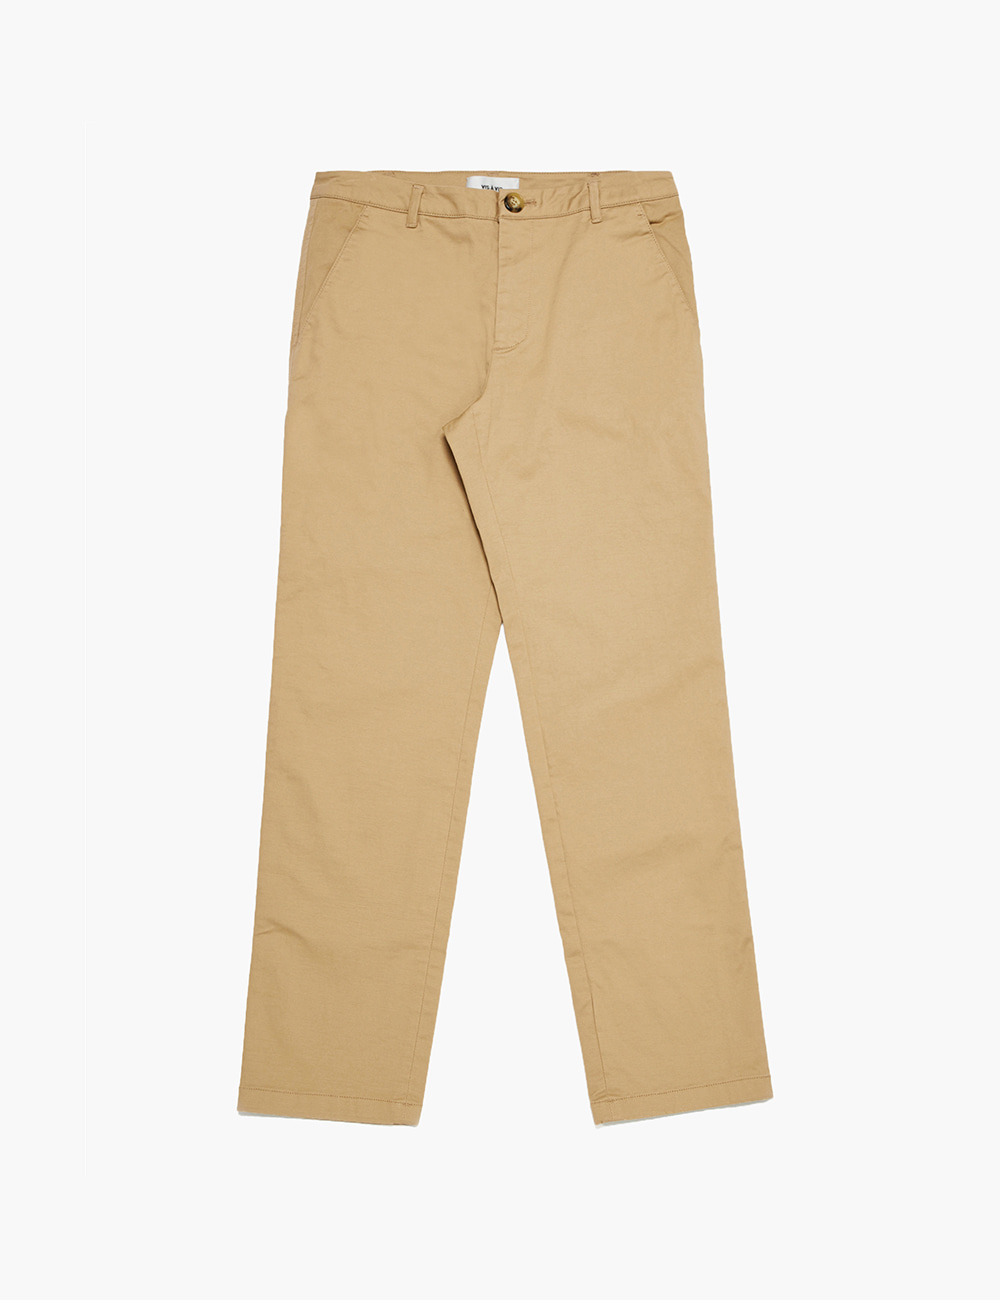 UNIFORM PANTS (BEIGE)